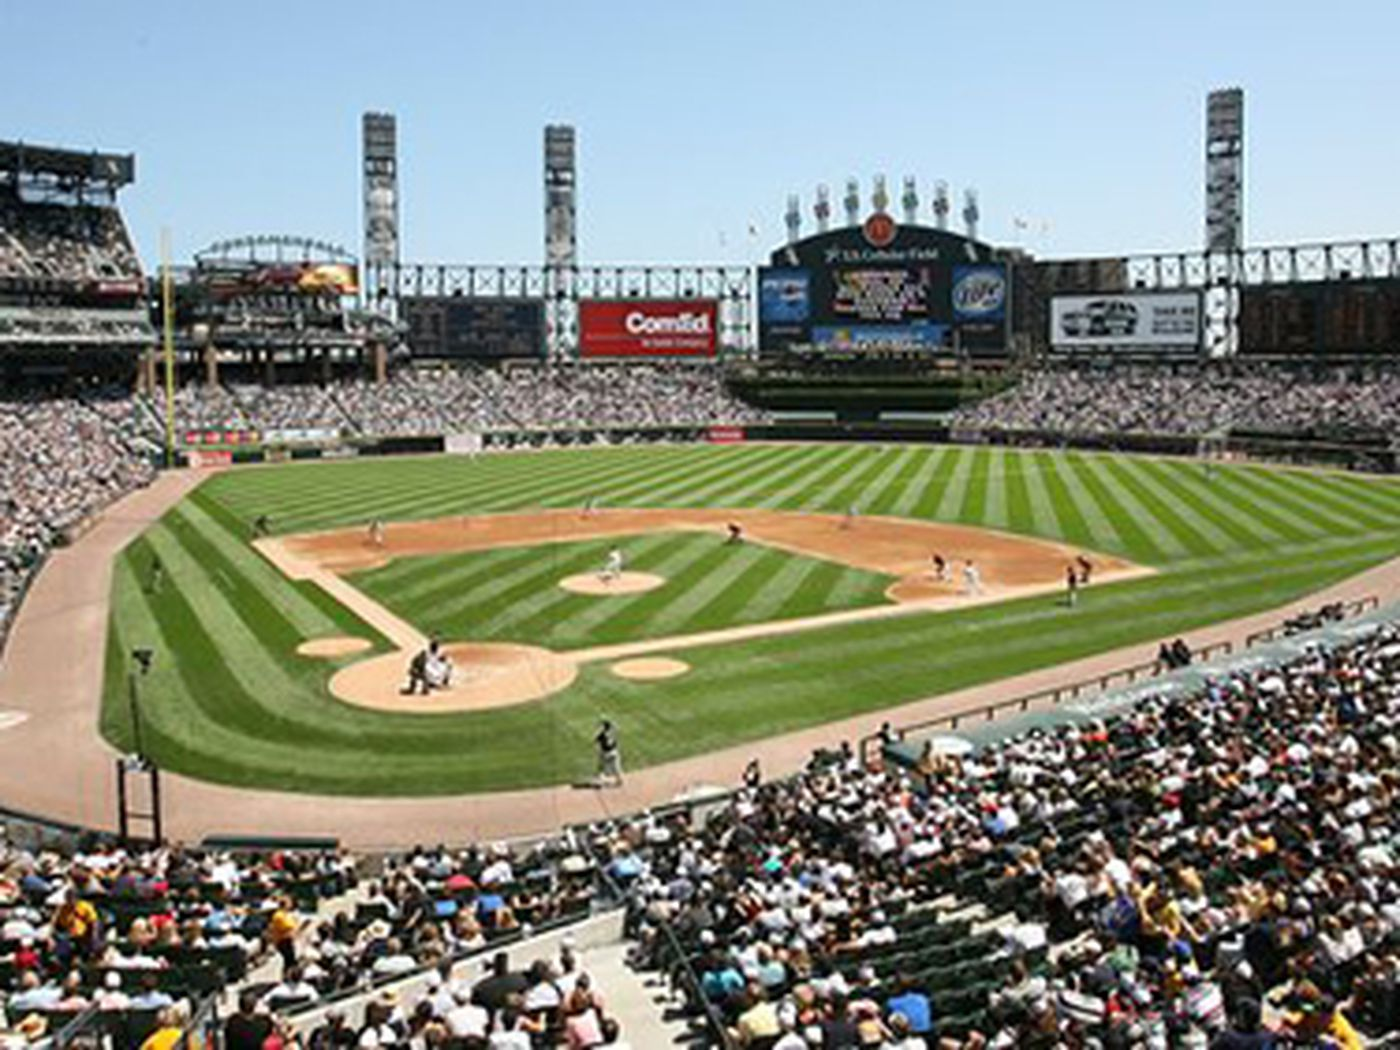 Where To Eat At US Cellular Field Home Of The Chicago White Sox - Us cellular community park map